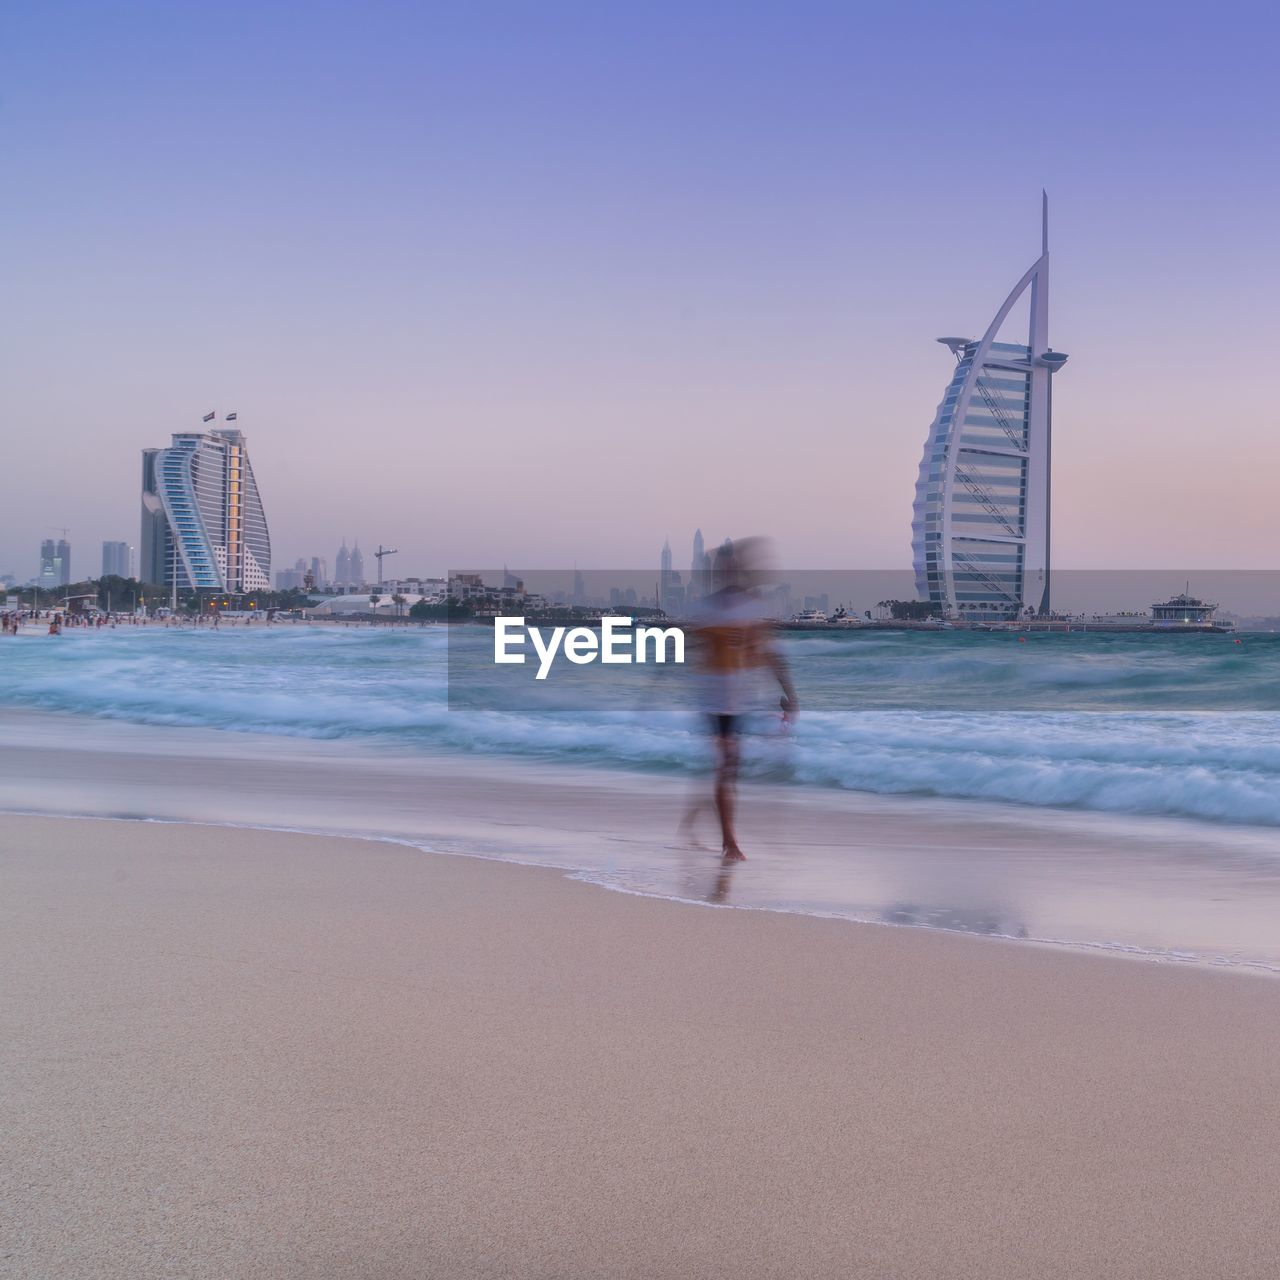 water, sky, sea, motion, architecture, land, city, building exterior, beach, built structure, blurred motion, office building exterior, nature, building, travel destinations, one person, real people, sand, urban skyline, skyscraper, tall - high, cityscape, outdoors